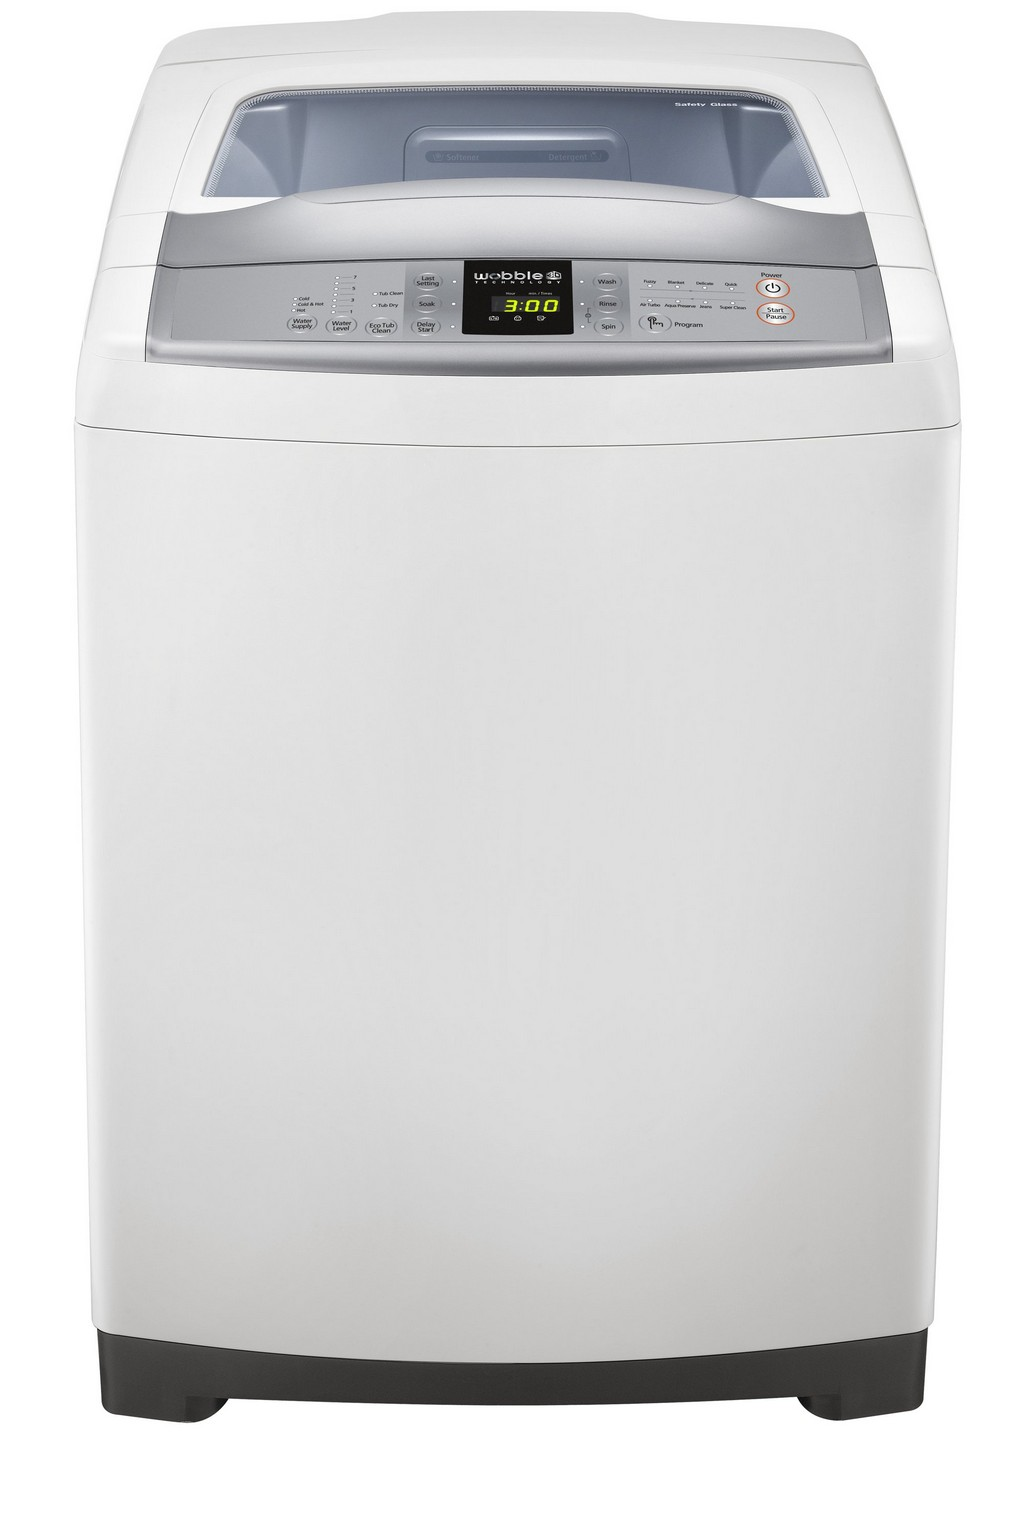 top load washer, kenmore washing machine, hotpoint washing machine